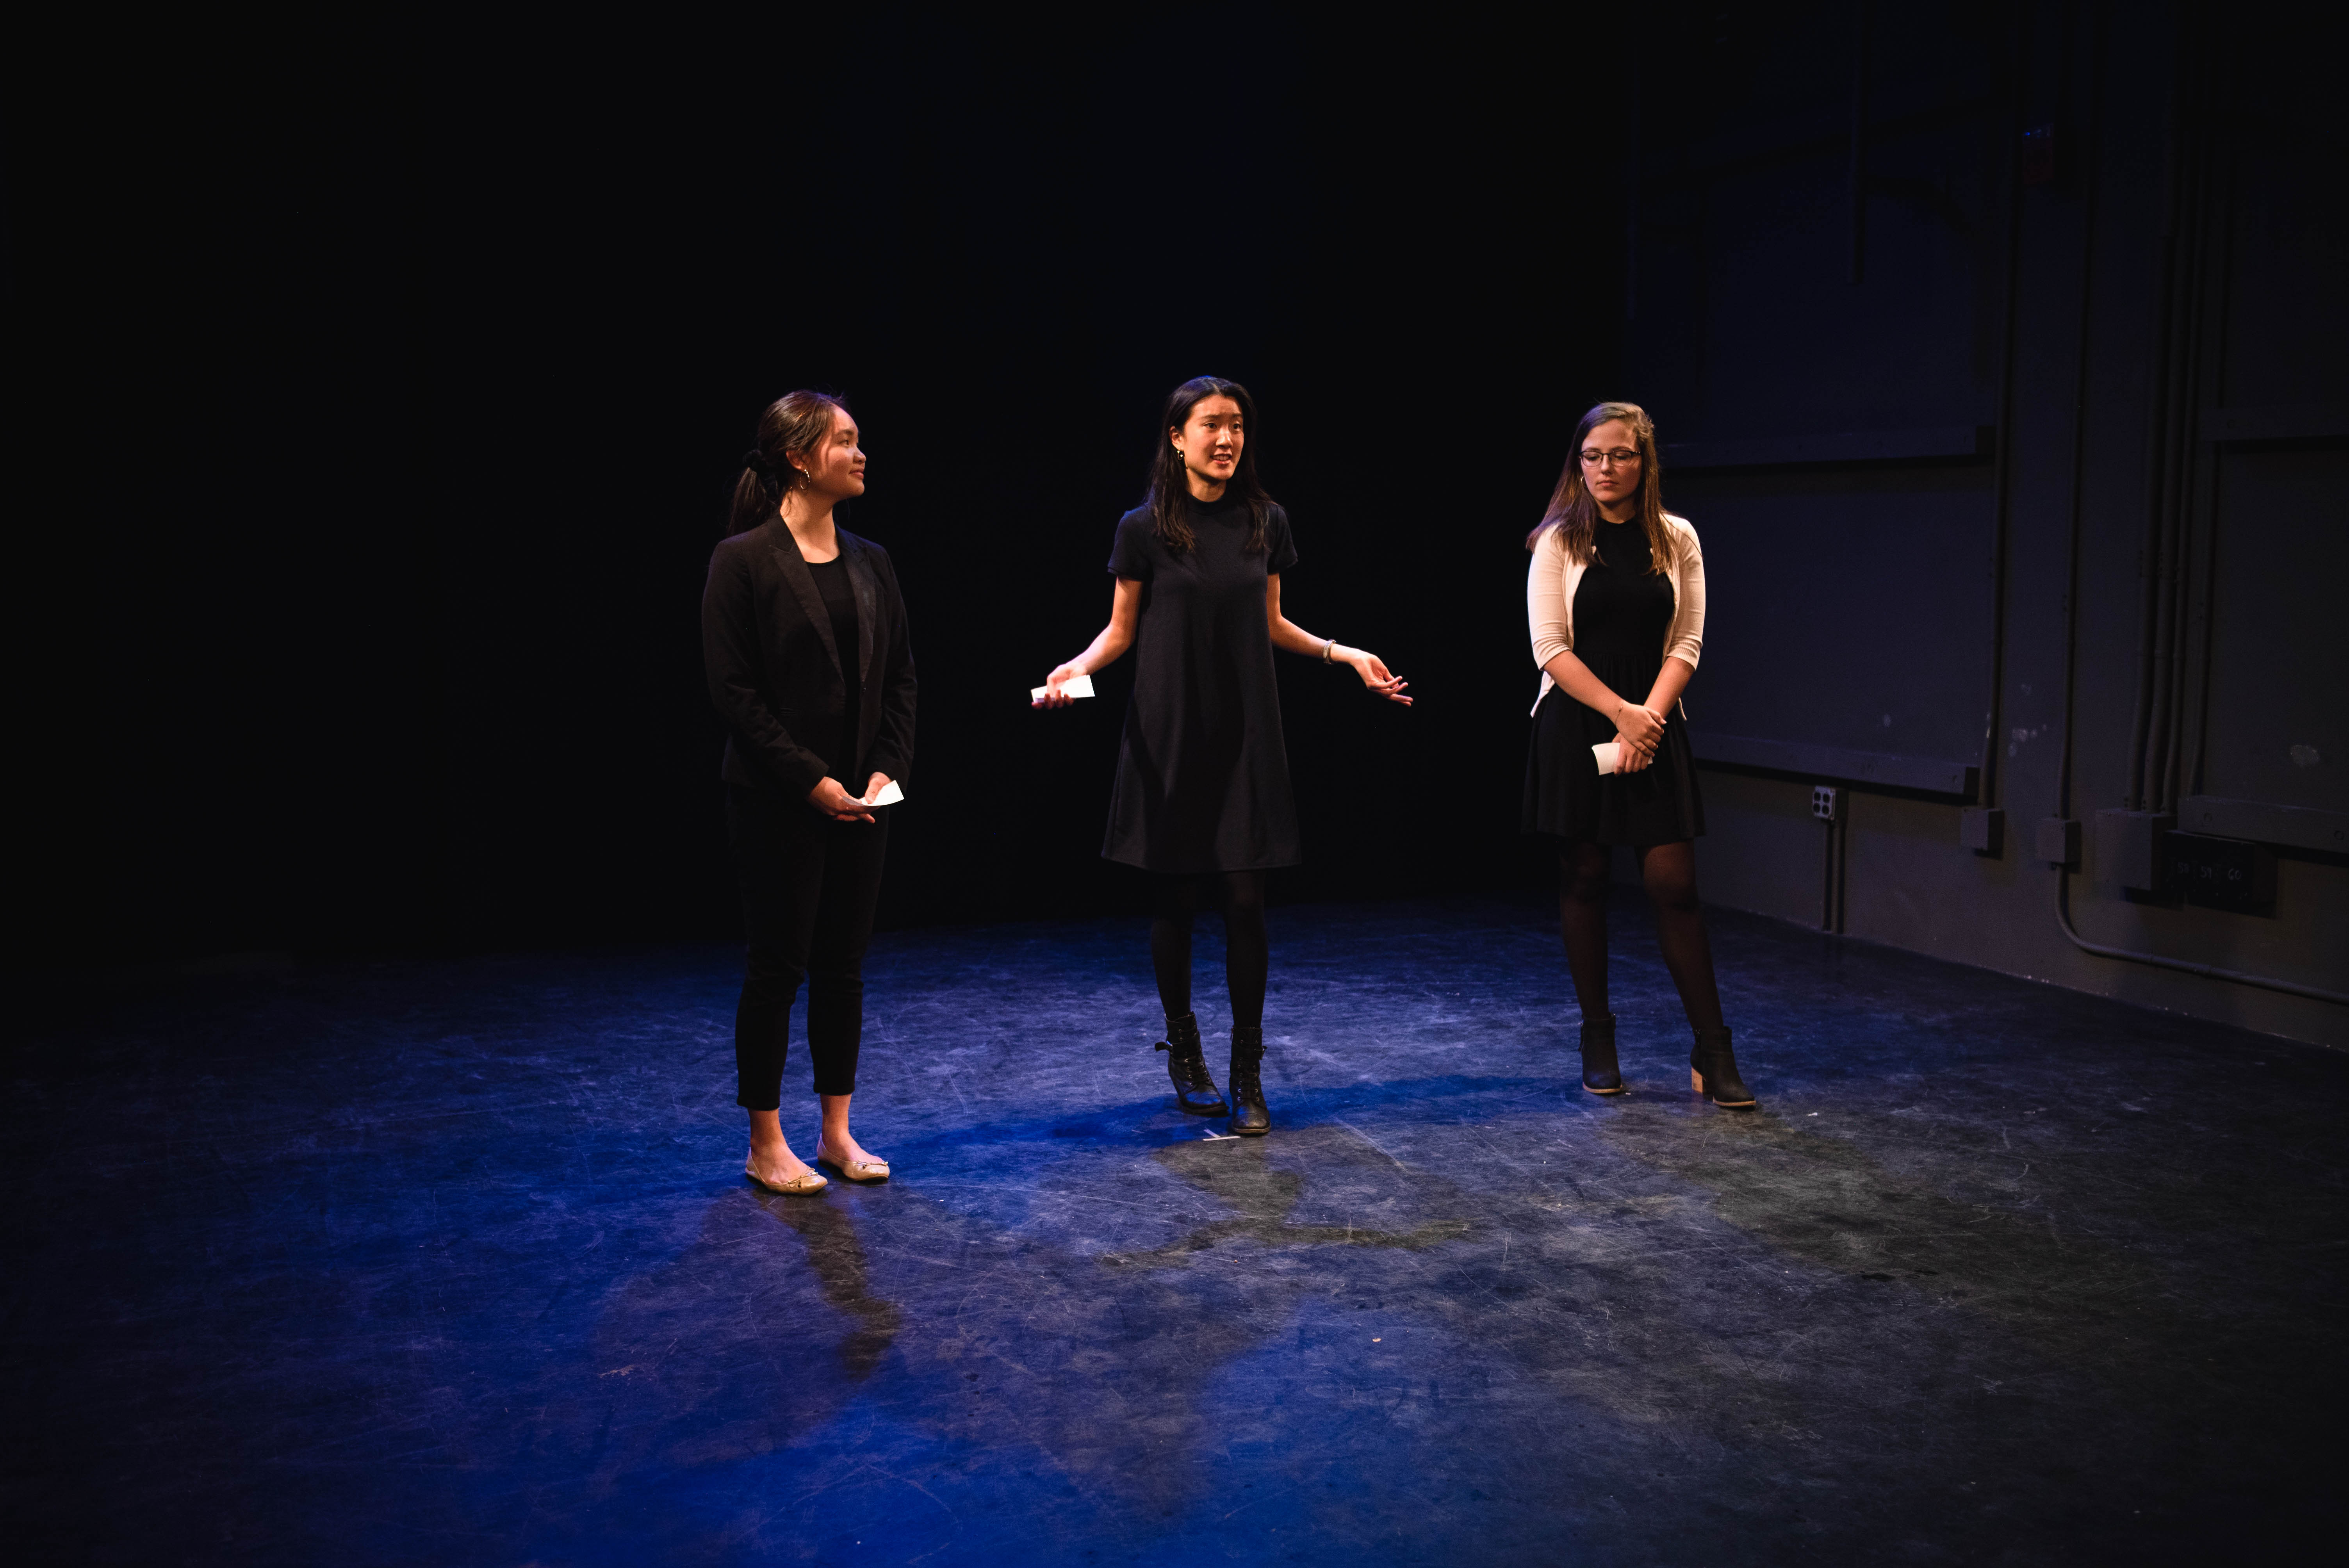 Three students speak on stage